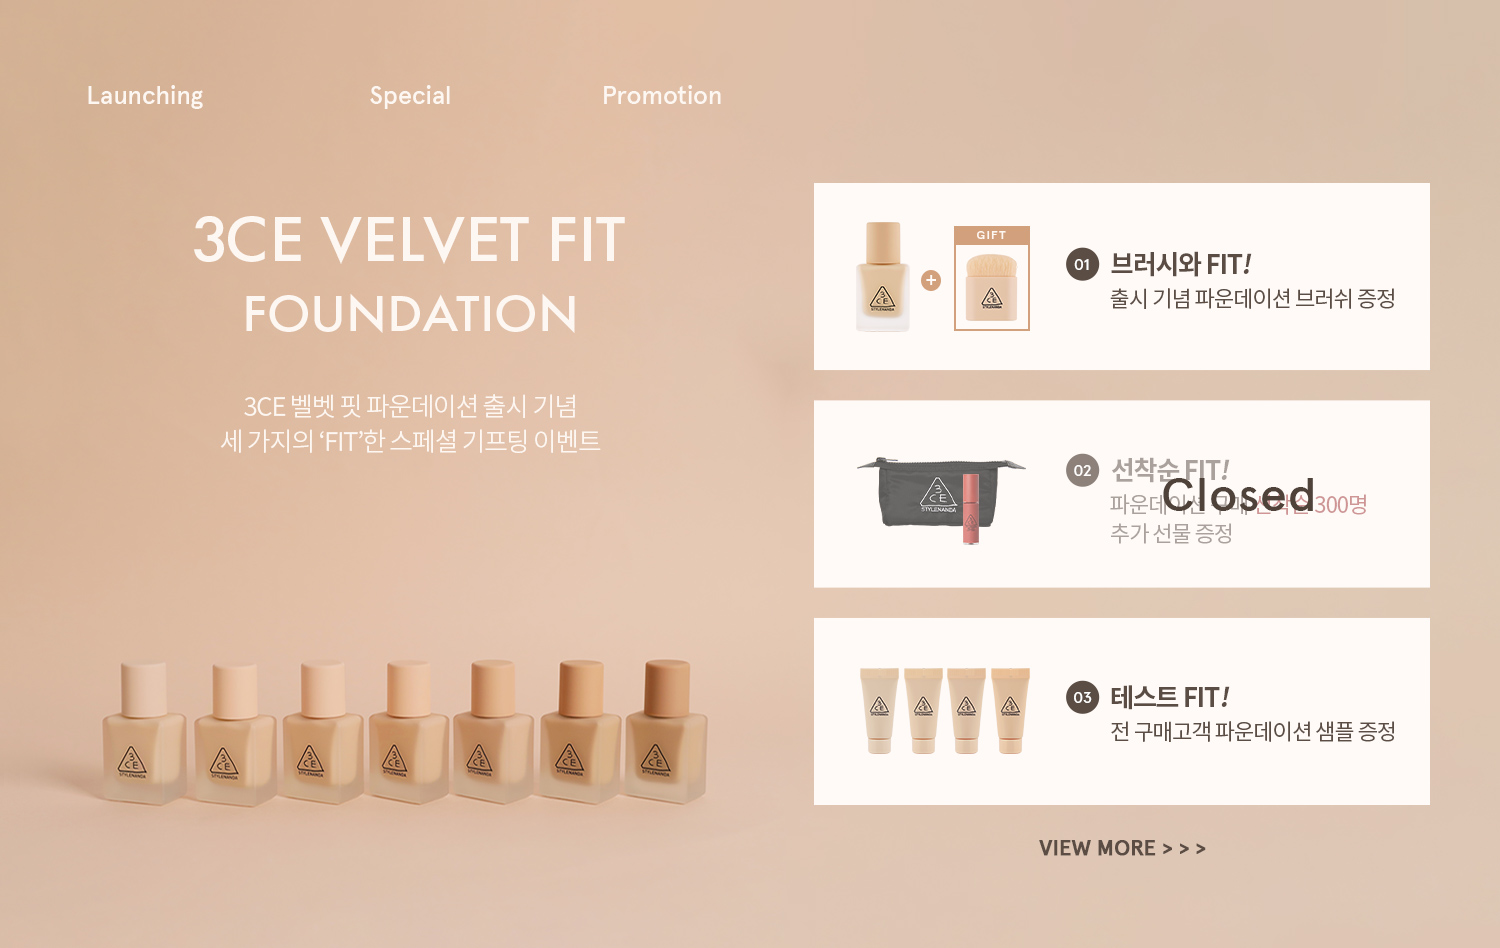 3CE VELVET FIT FOUNDATION Launching